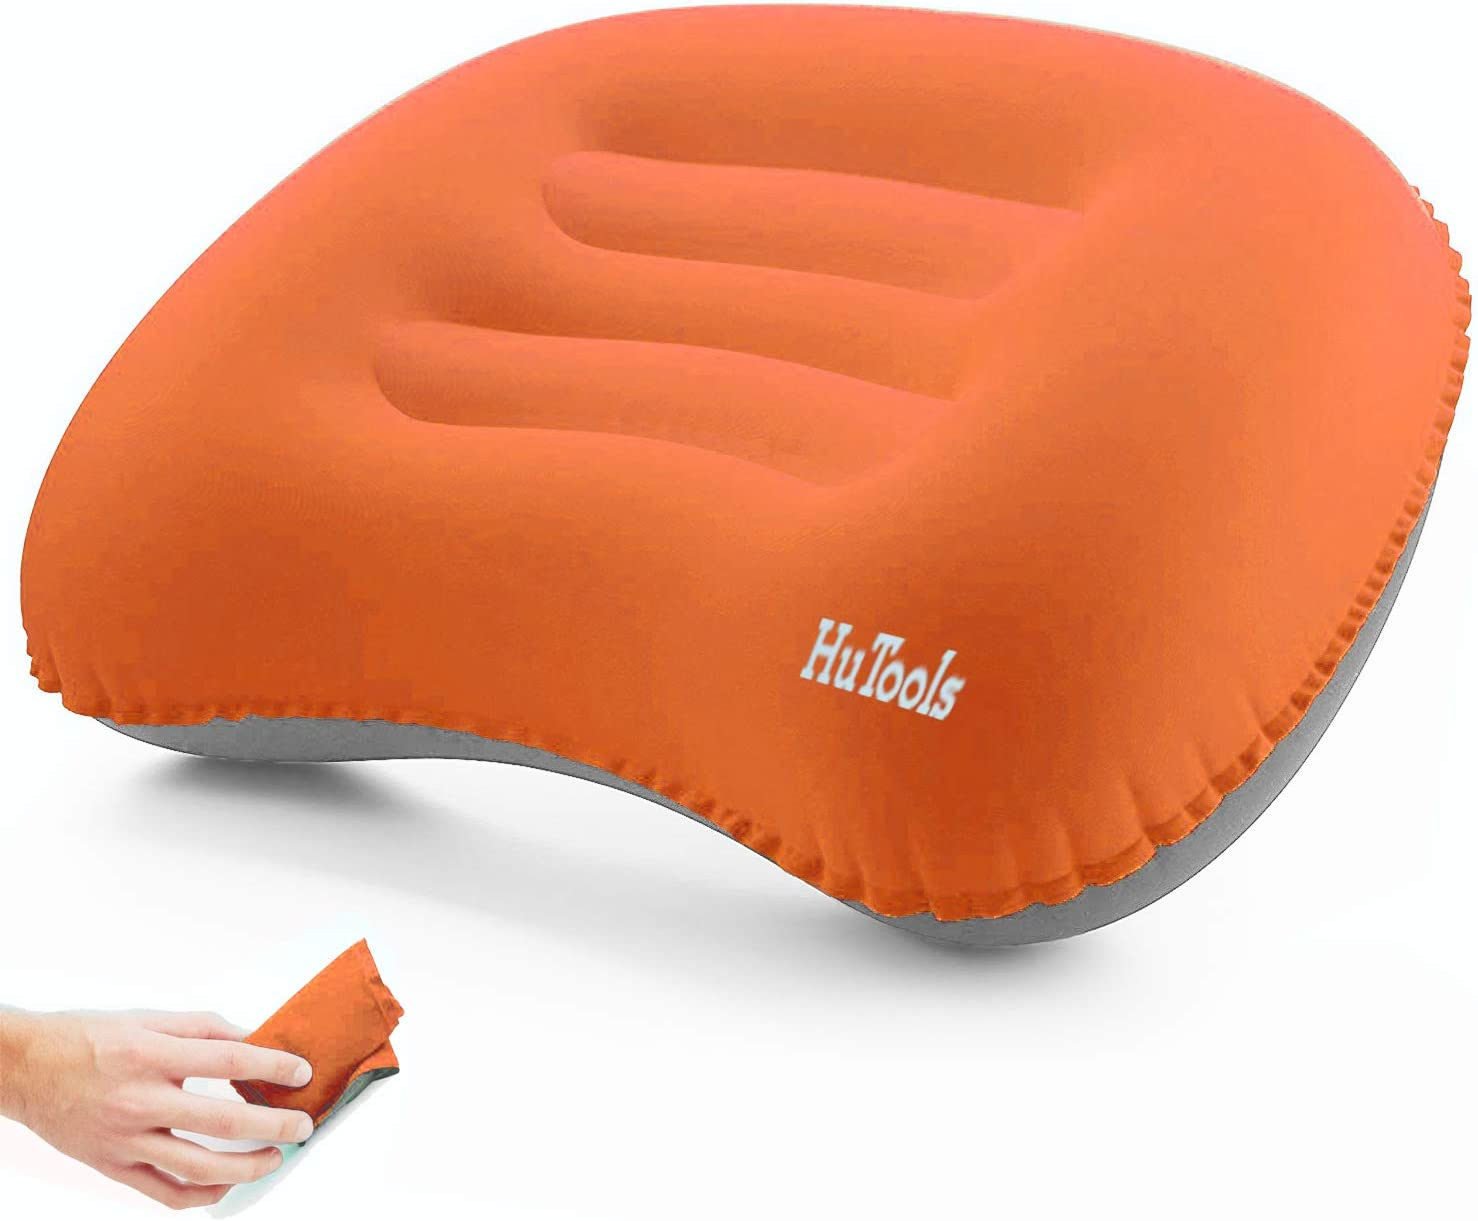 HuTools Inflatable Camping Pillow Backpacking Pillow Lightweight Compressible Travel Air Pillow Ultralight Ergonomic Pillow Portable for Camping with Neck /& Lumbar Support (Gray)